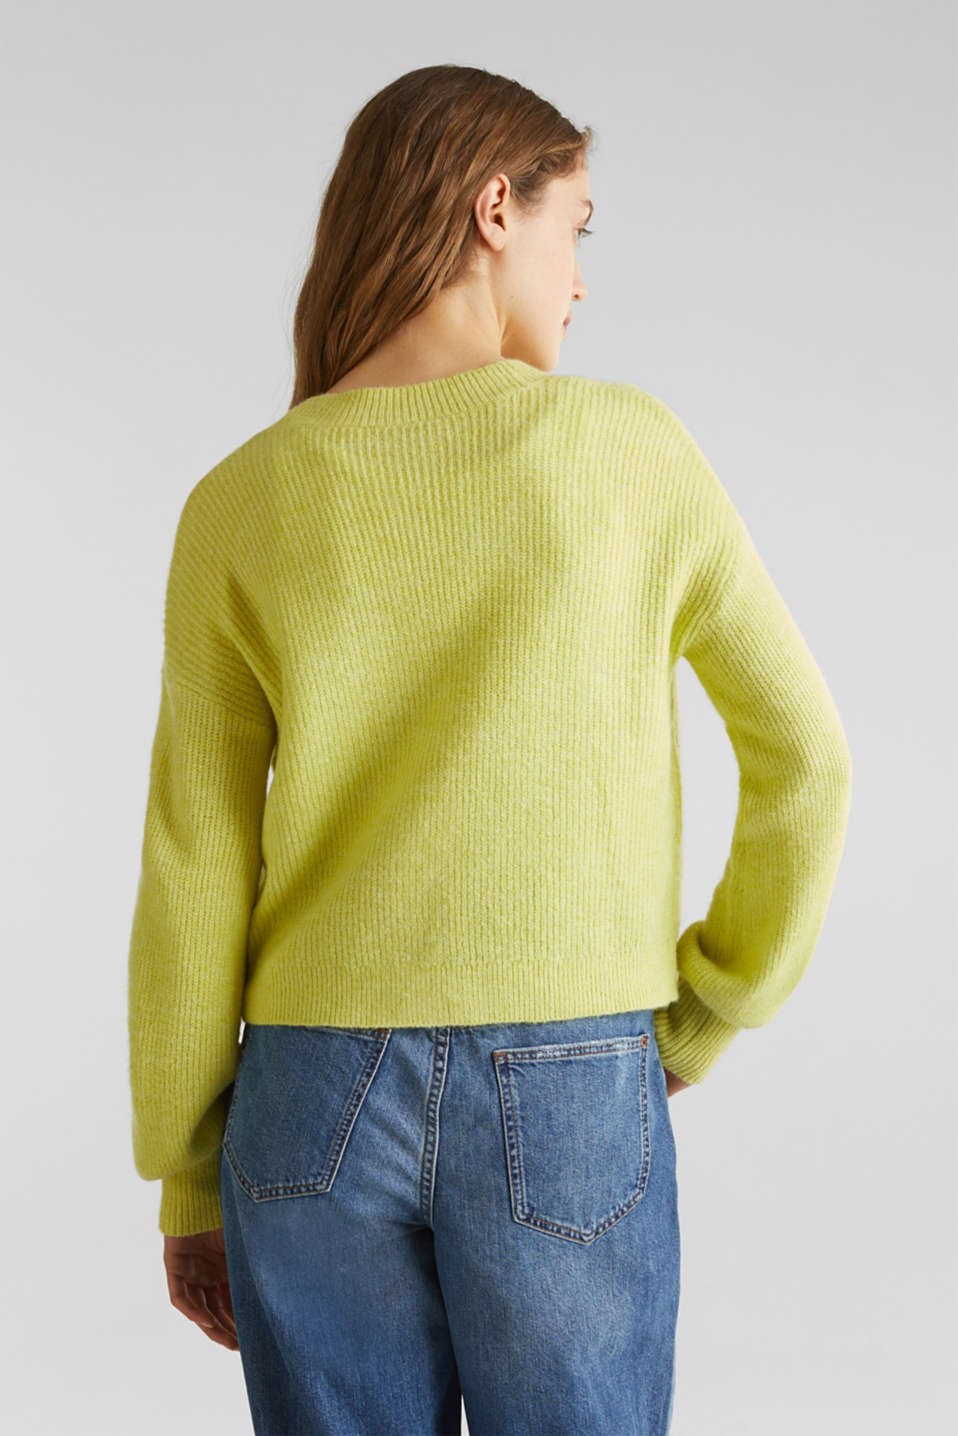 NEON short, boxy stretch cardigan, LIME YELLOW, detail image number 3